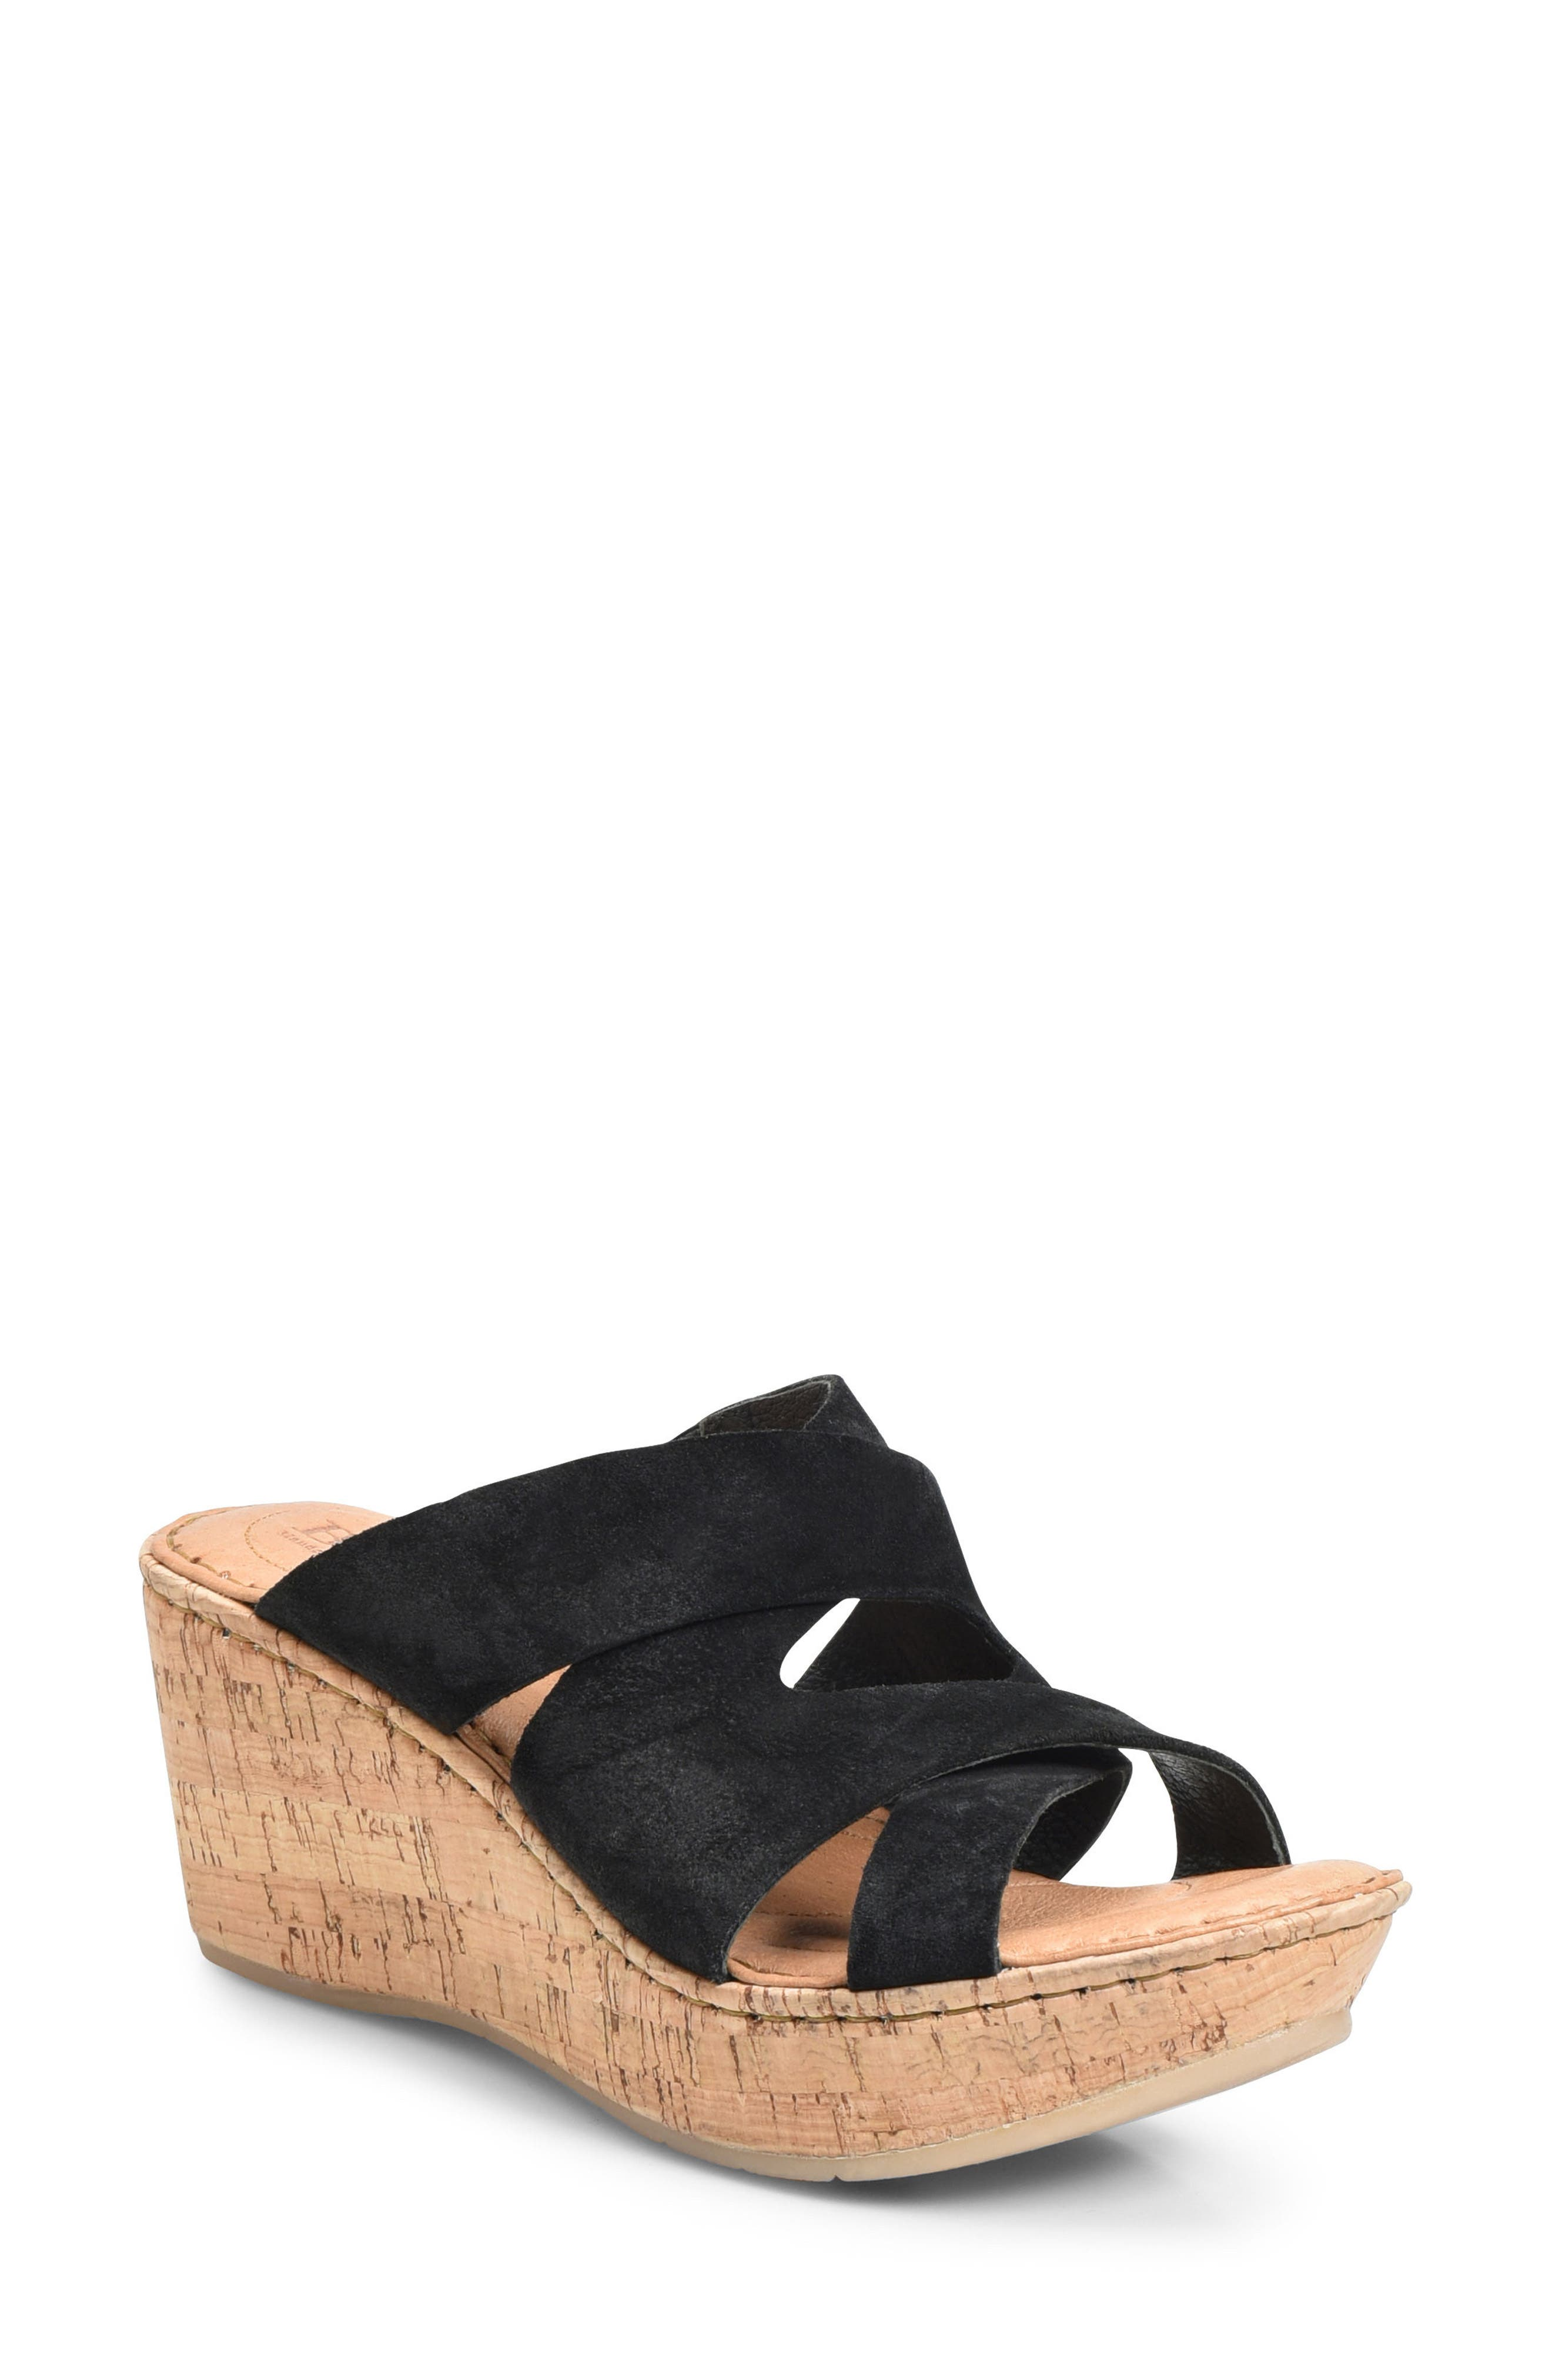 Padron Wedge Sandal,                         Main,                         color, 001